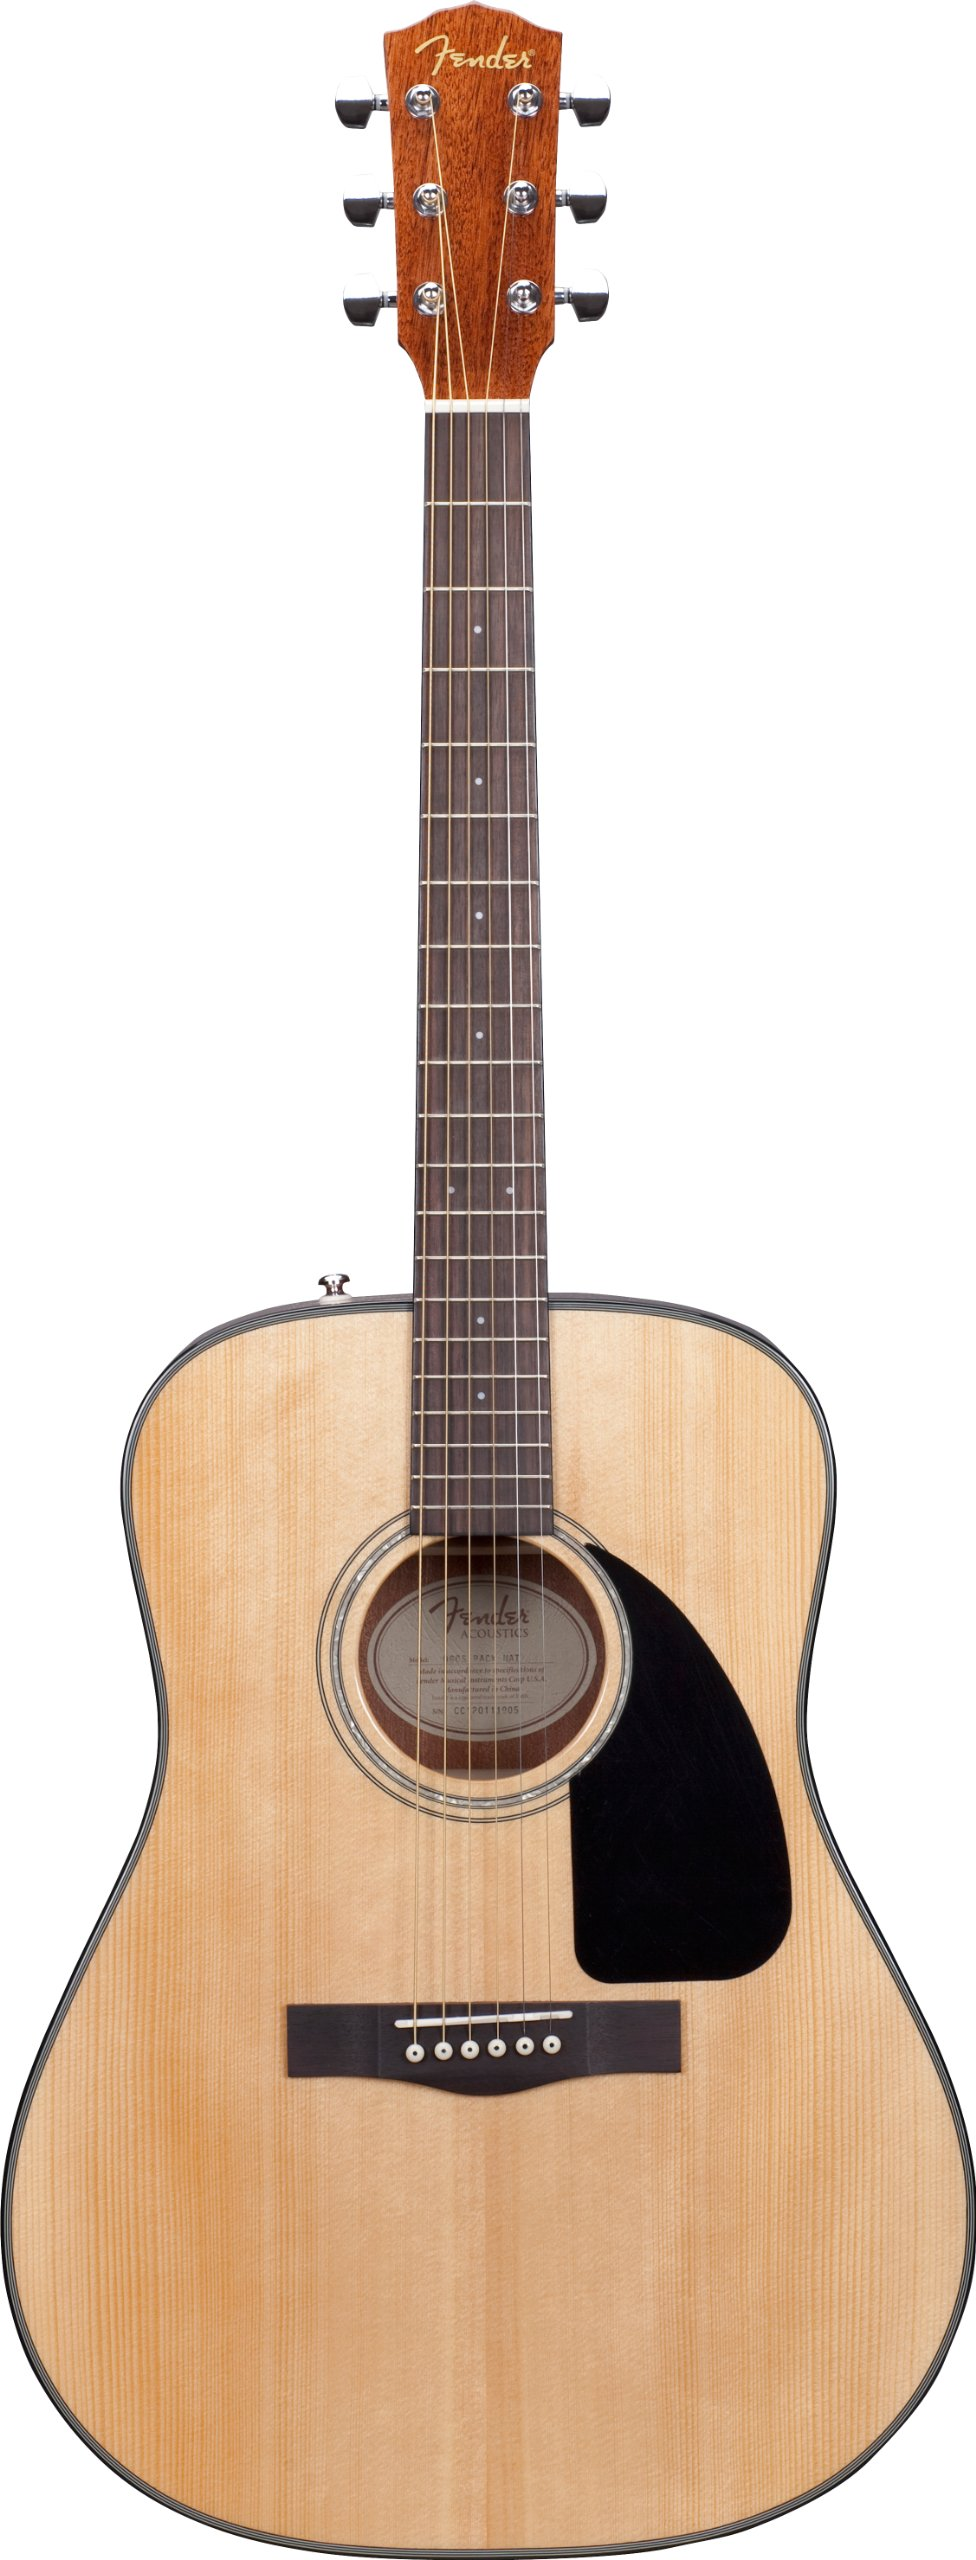 Fender DG-8S Solid Spruce Top Dreadnought Acoustic Guitar Pack with Gig Bag, Tuner, Strings, Picks, Strap, and Instructional DVD  - Natural by Fender